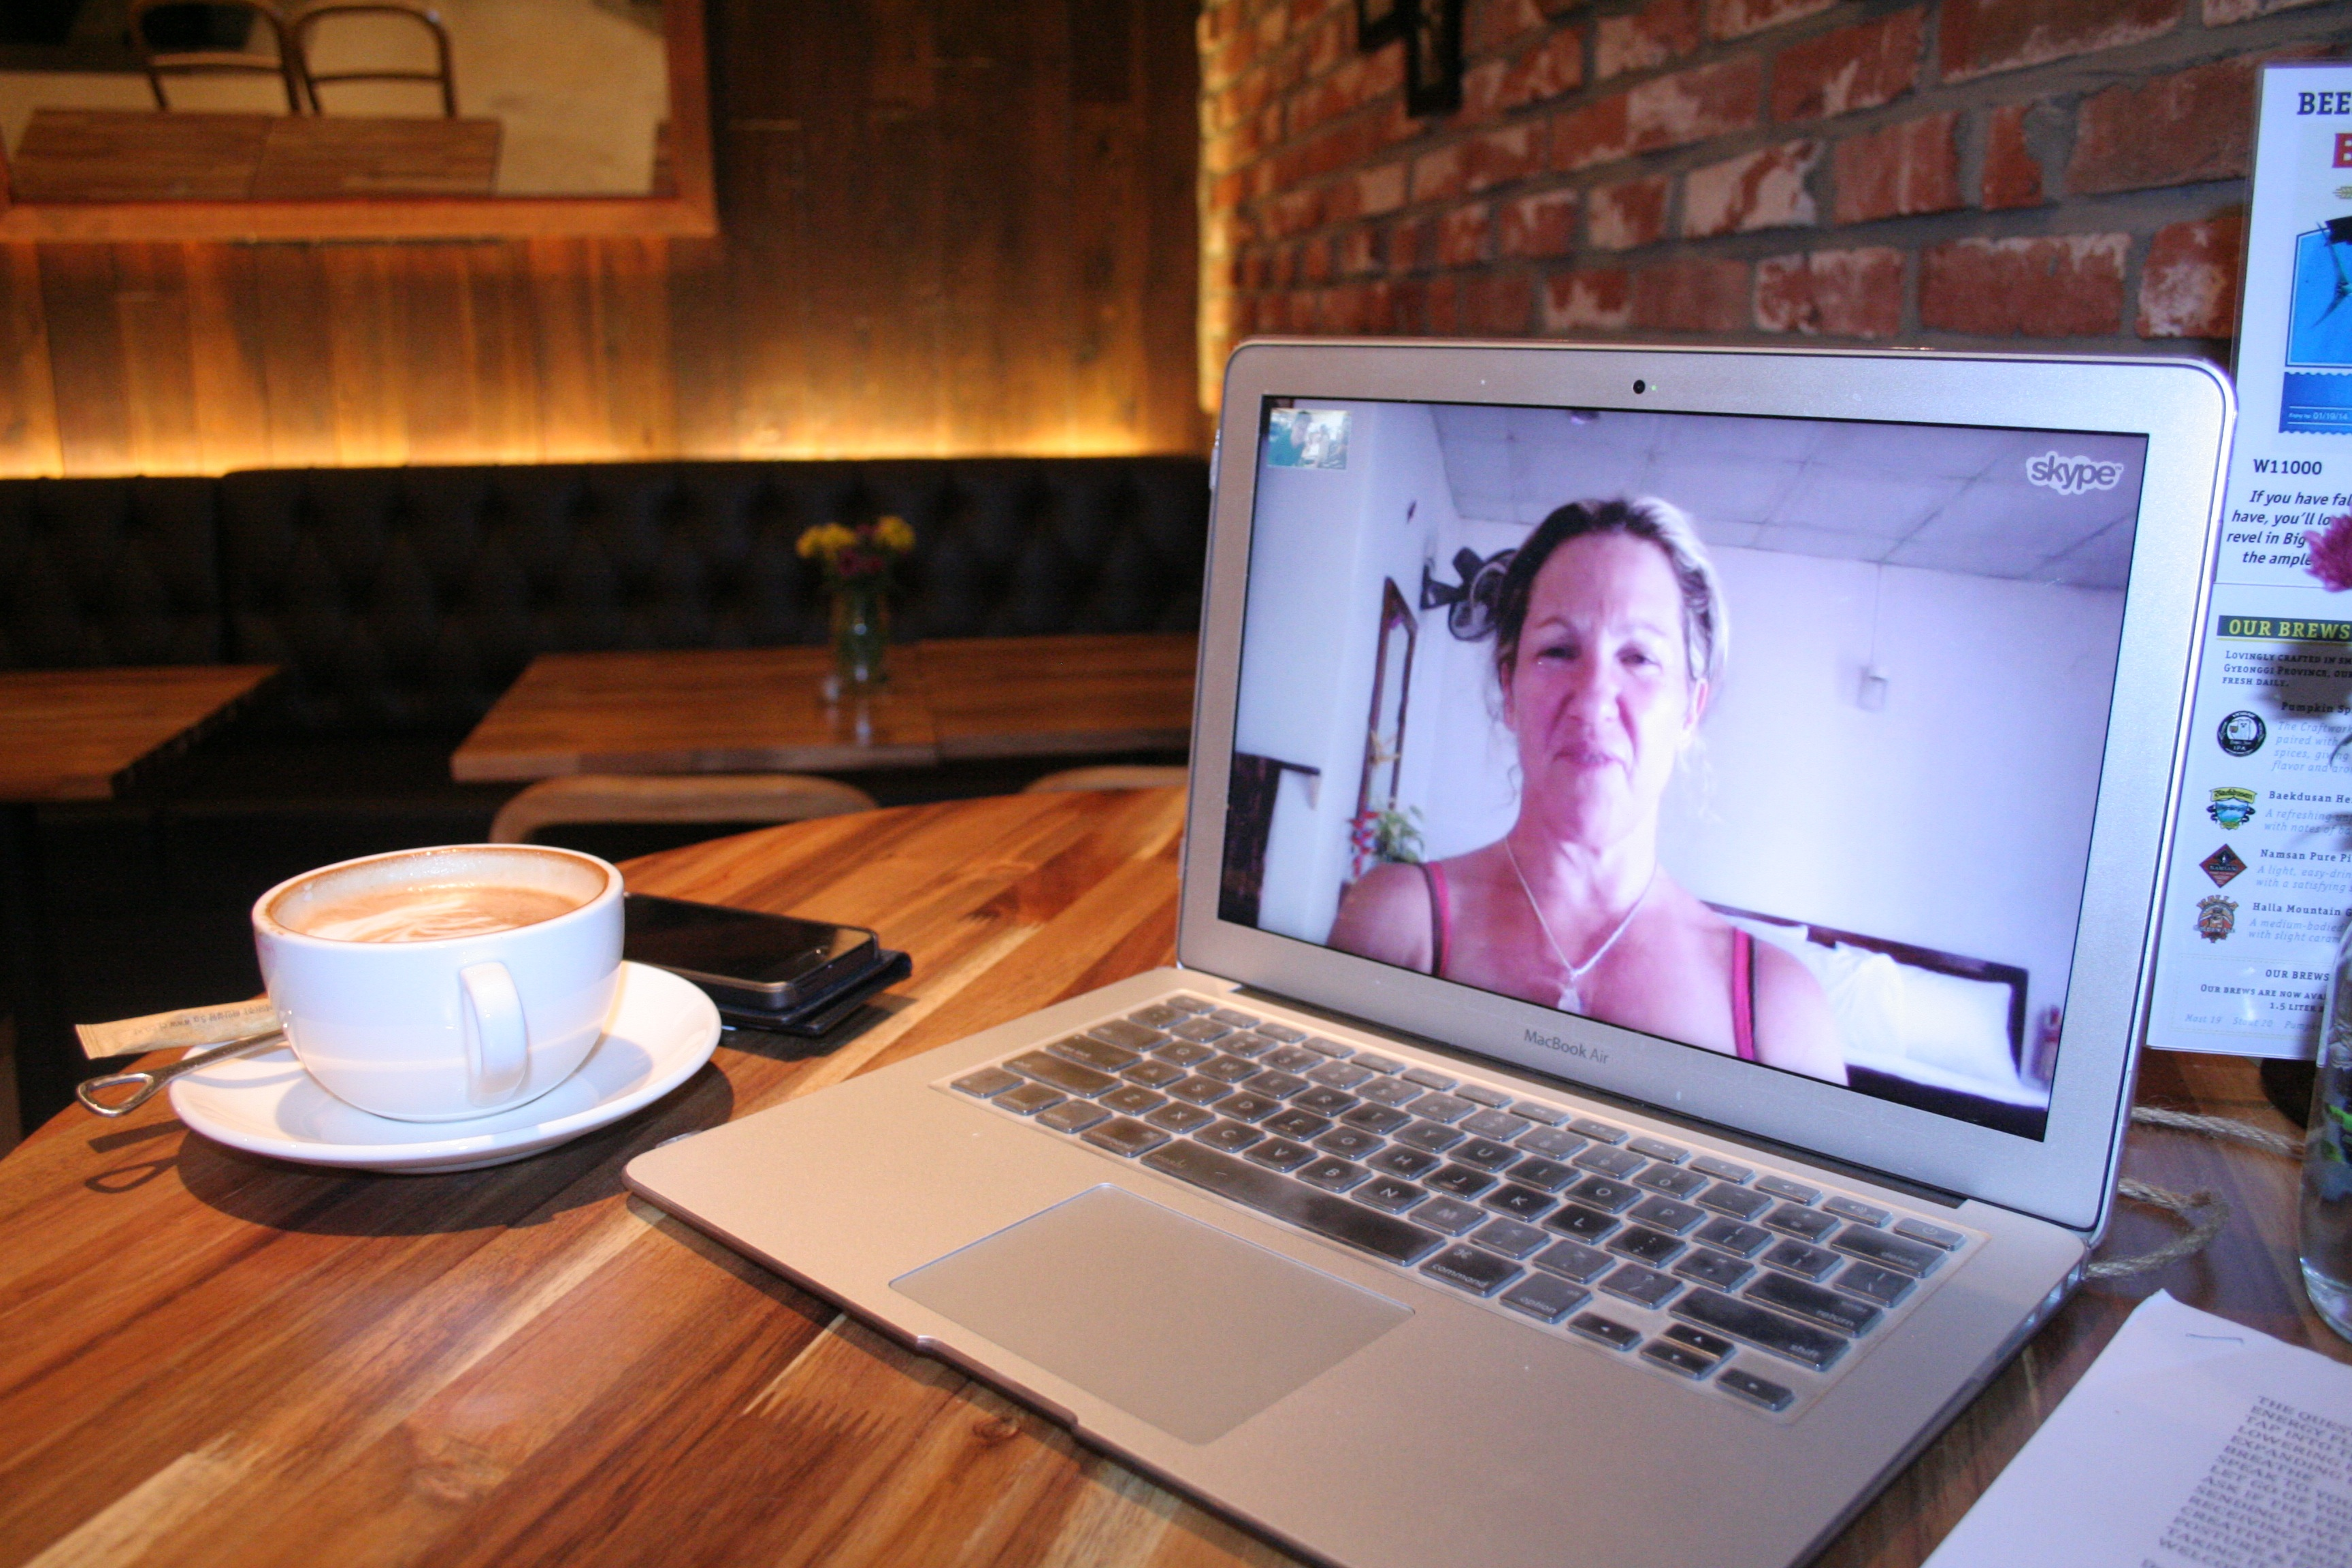 video web chat laptop connecting with friends combating loneliness